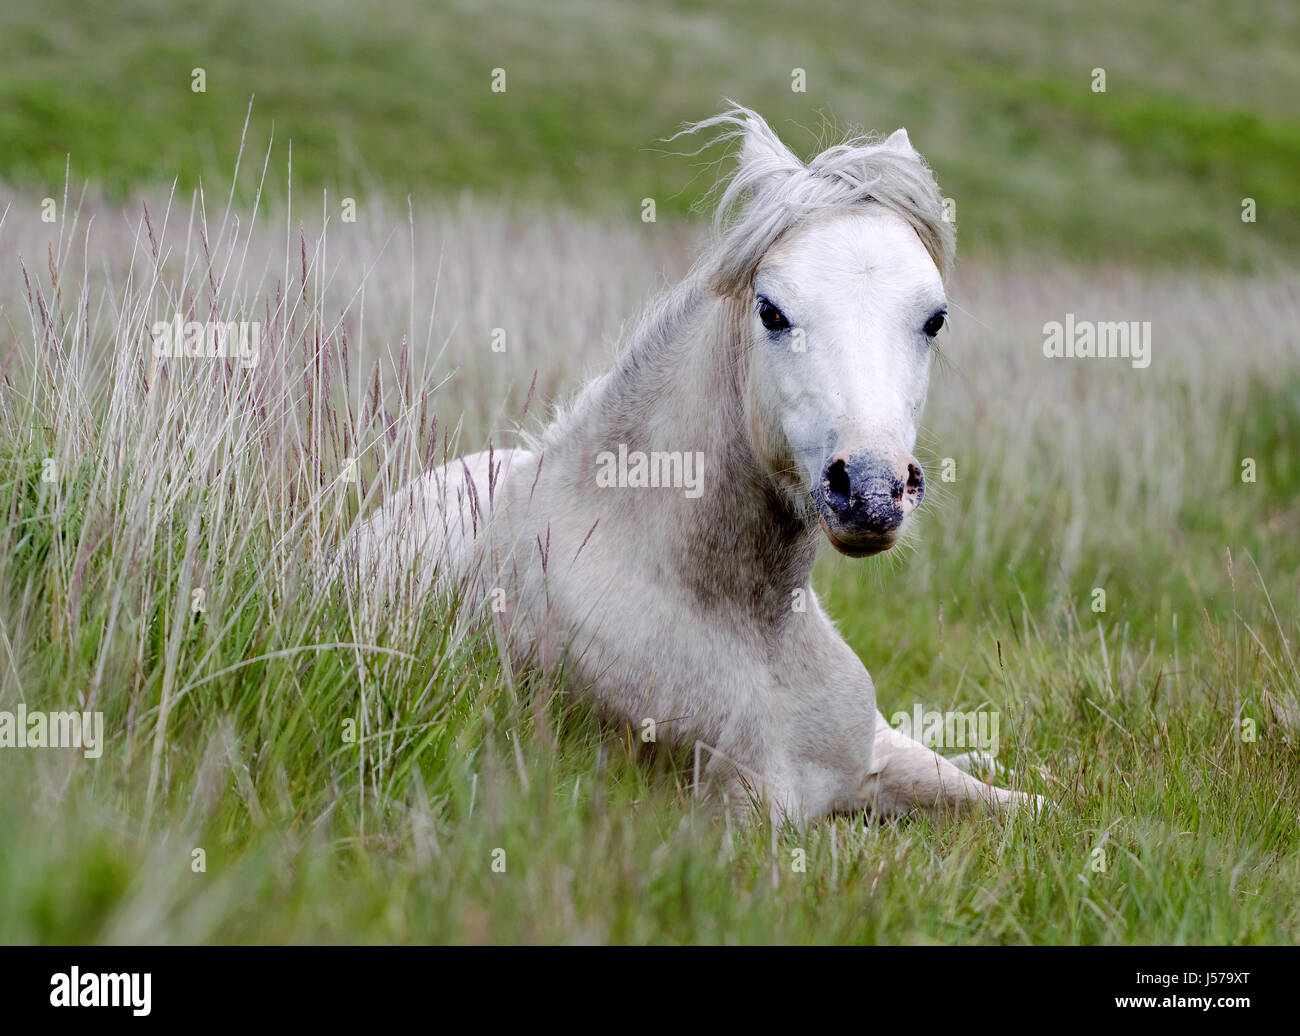 A white Gower Common ponie, Equus caballus, lying down inhe grass on aGower Peninsula Common, Wales, UK - Stock Image